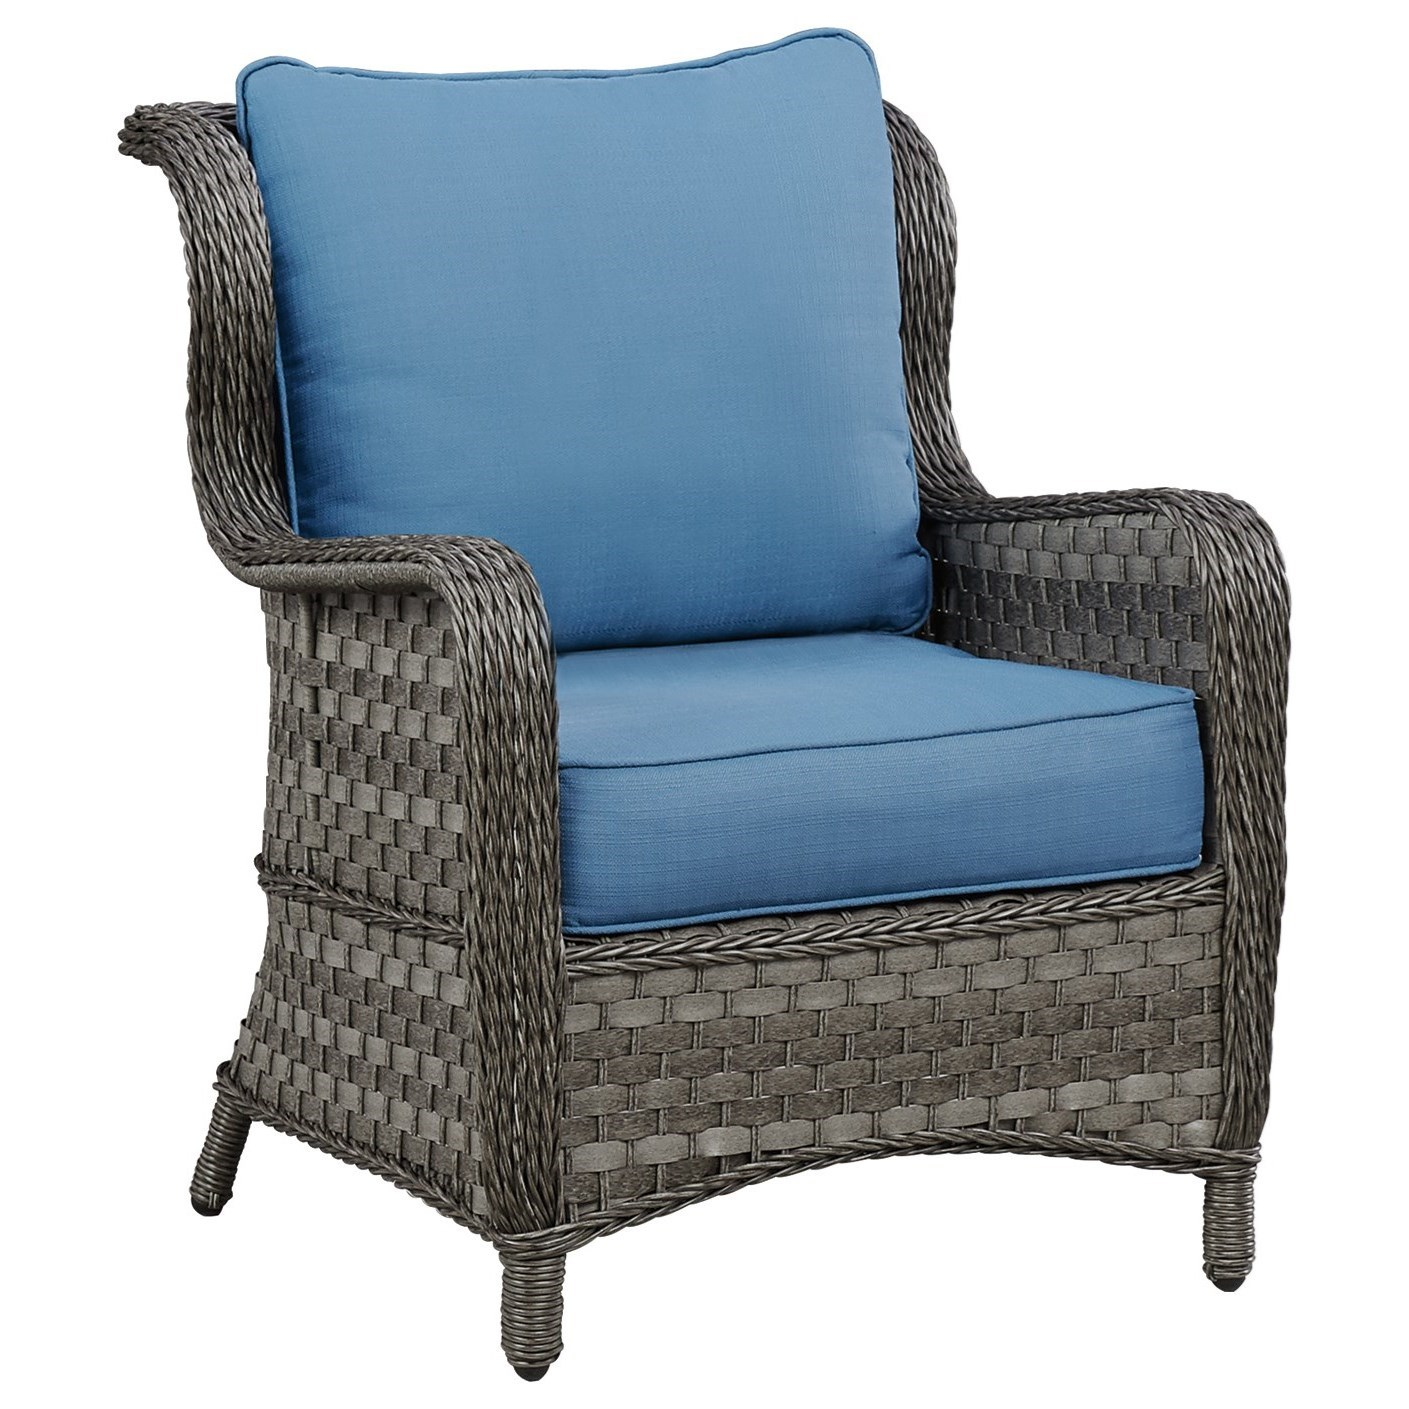 Outdoor Lounge Chair w/ Cushion